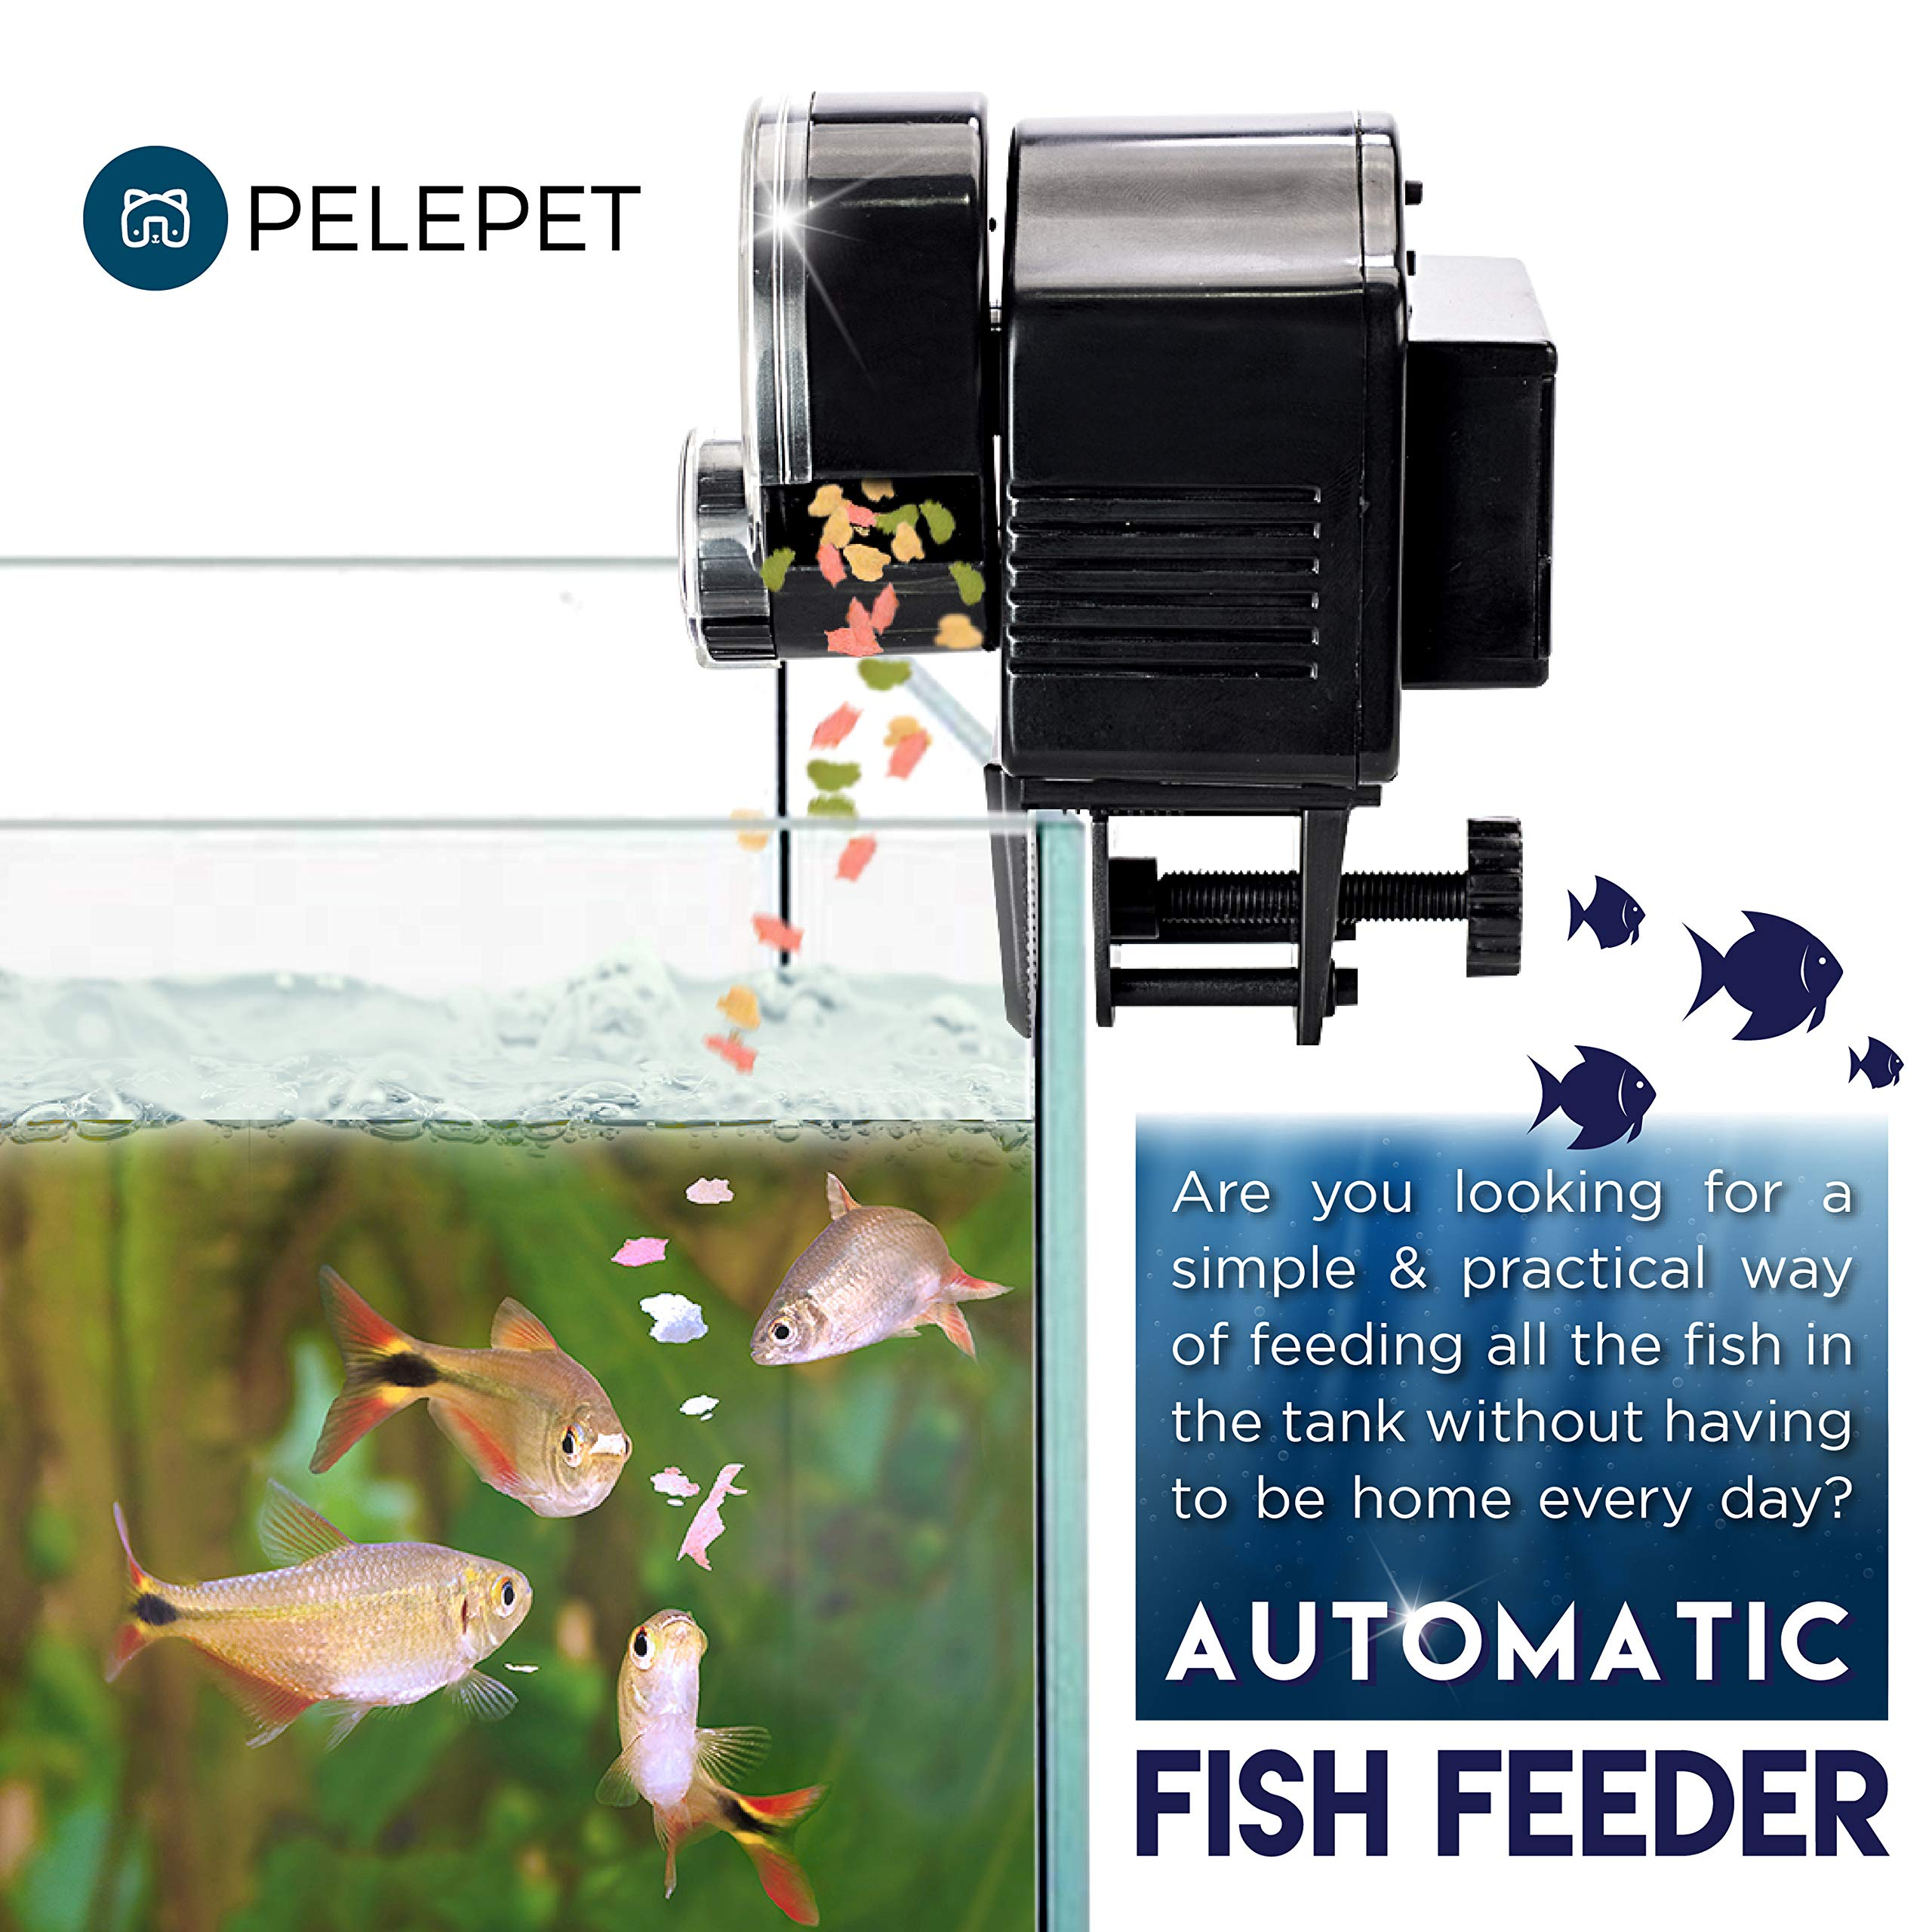 PELEPET Automatic Fish Feeder - Aquarium Feeder - Fish Food Vacation Feeder - Auto Feeding Unit + Net for Fish Tank, Thermostat & Jelly Fish - Everyday Fish Food Dispenser by PELEPET (Image #5)